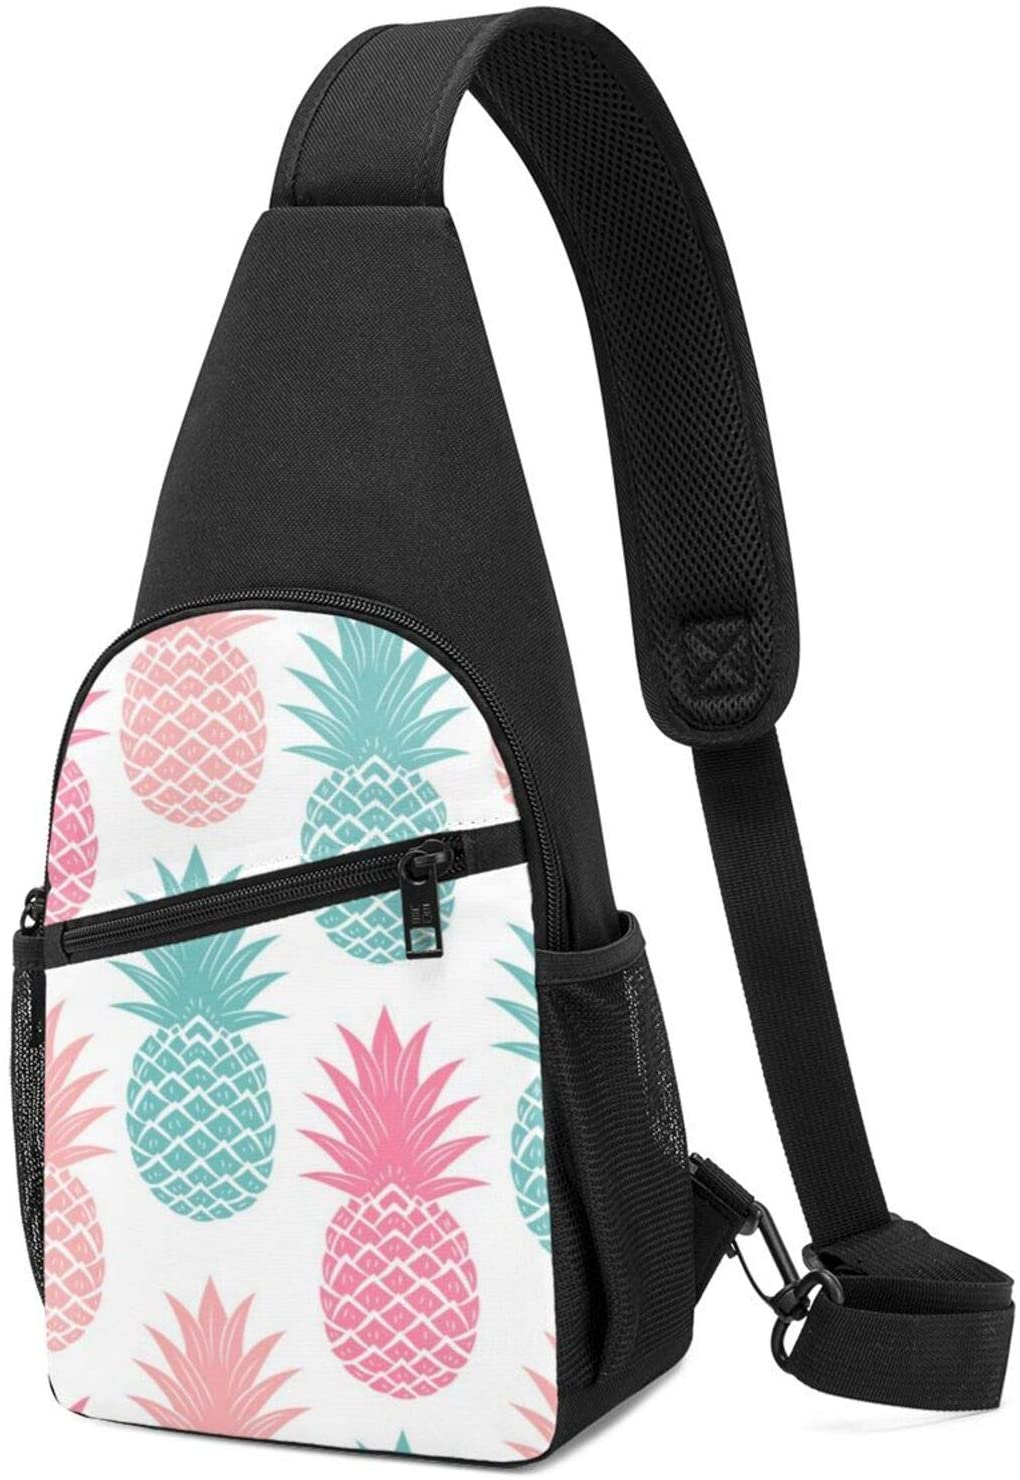 NiYoung Casual Sling Bag Lightweight Chest Package Anti-Theft Outdoor Backpack for Work, Commuting, Outdoor Fashion Colorful Pineapple Daypack